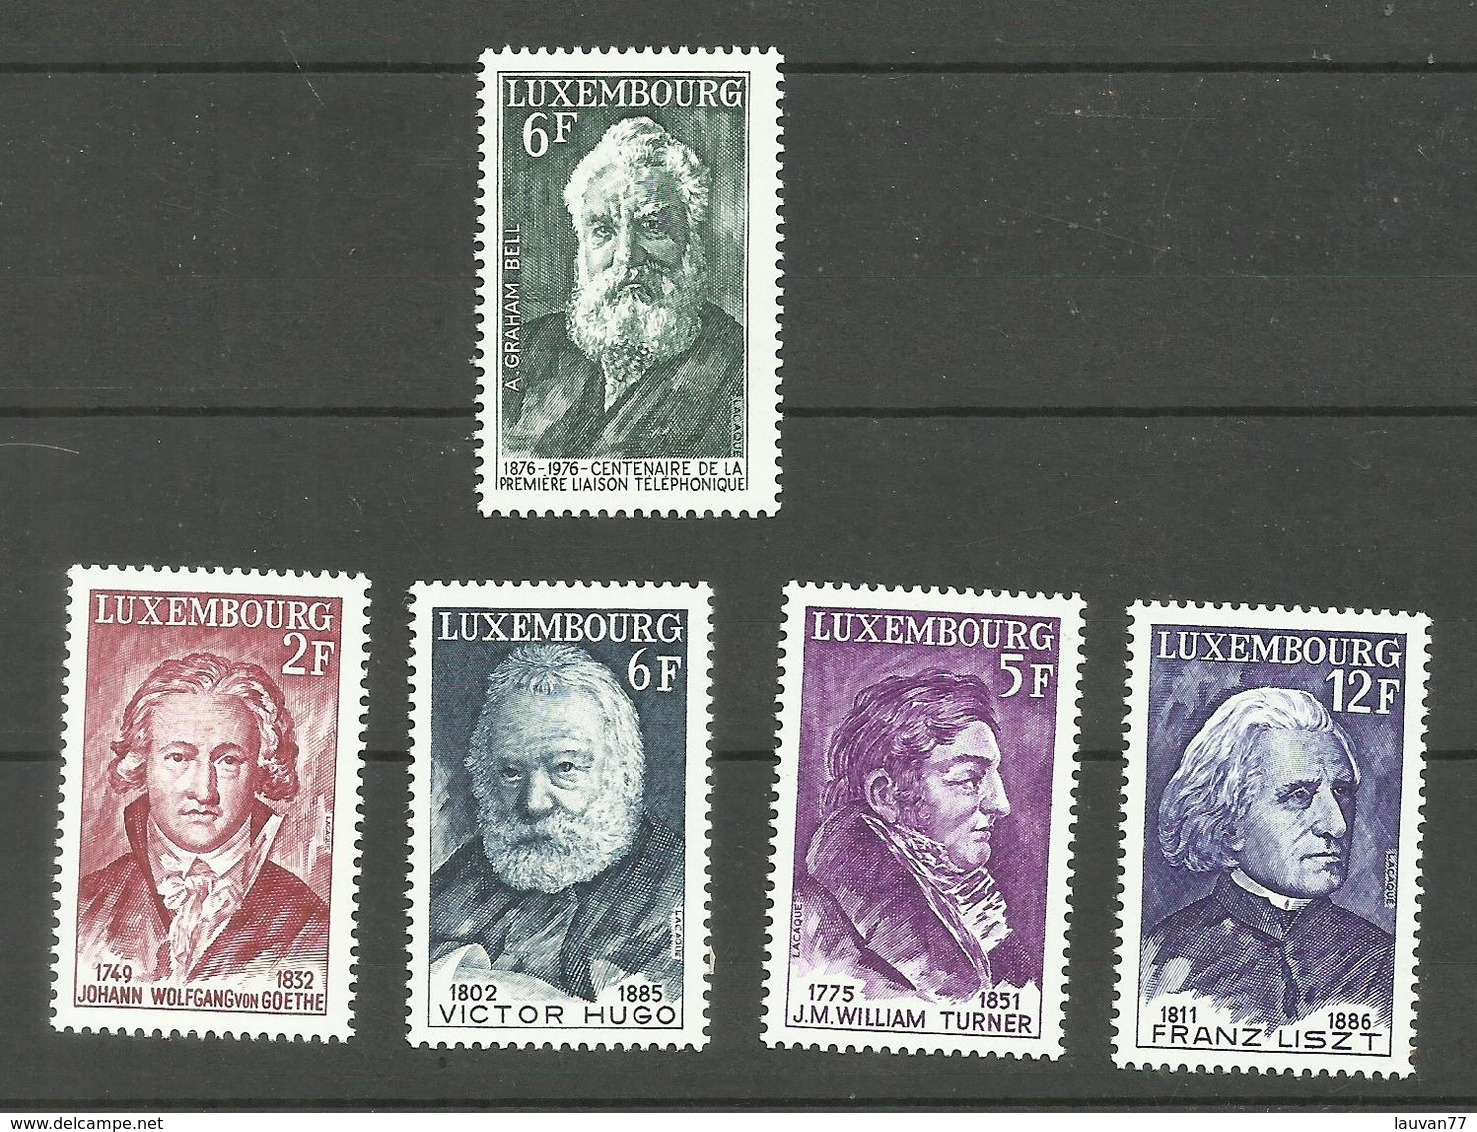 Luxembourg N°885, 891 à 894 Neufs** Cote 3.35 Euros - Unused Stamps